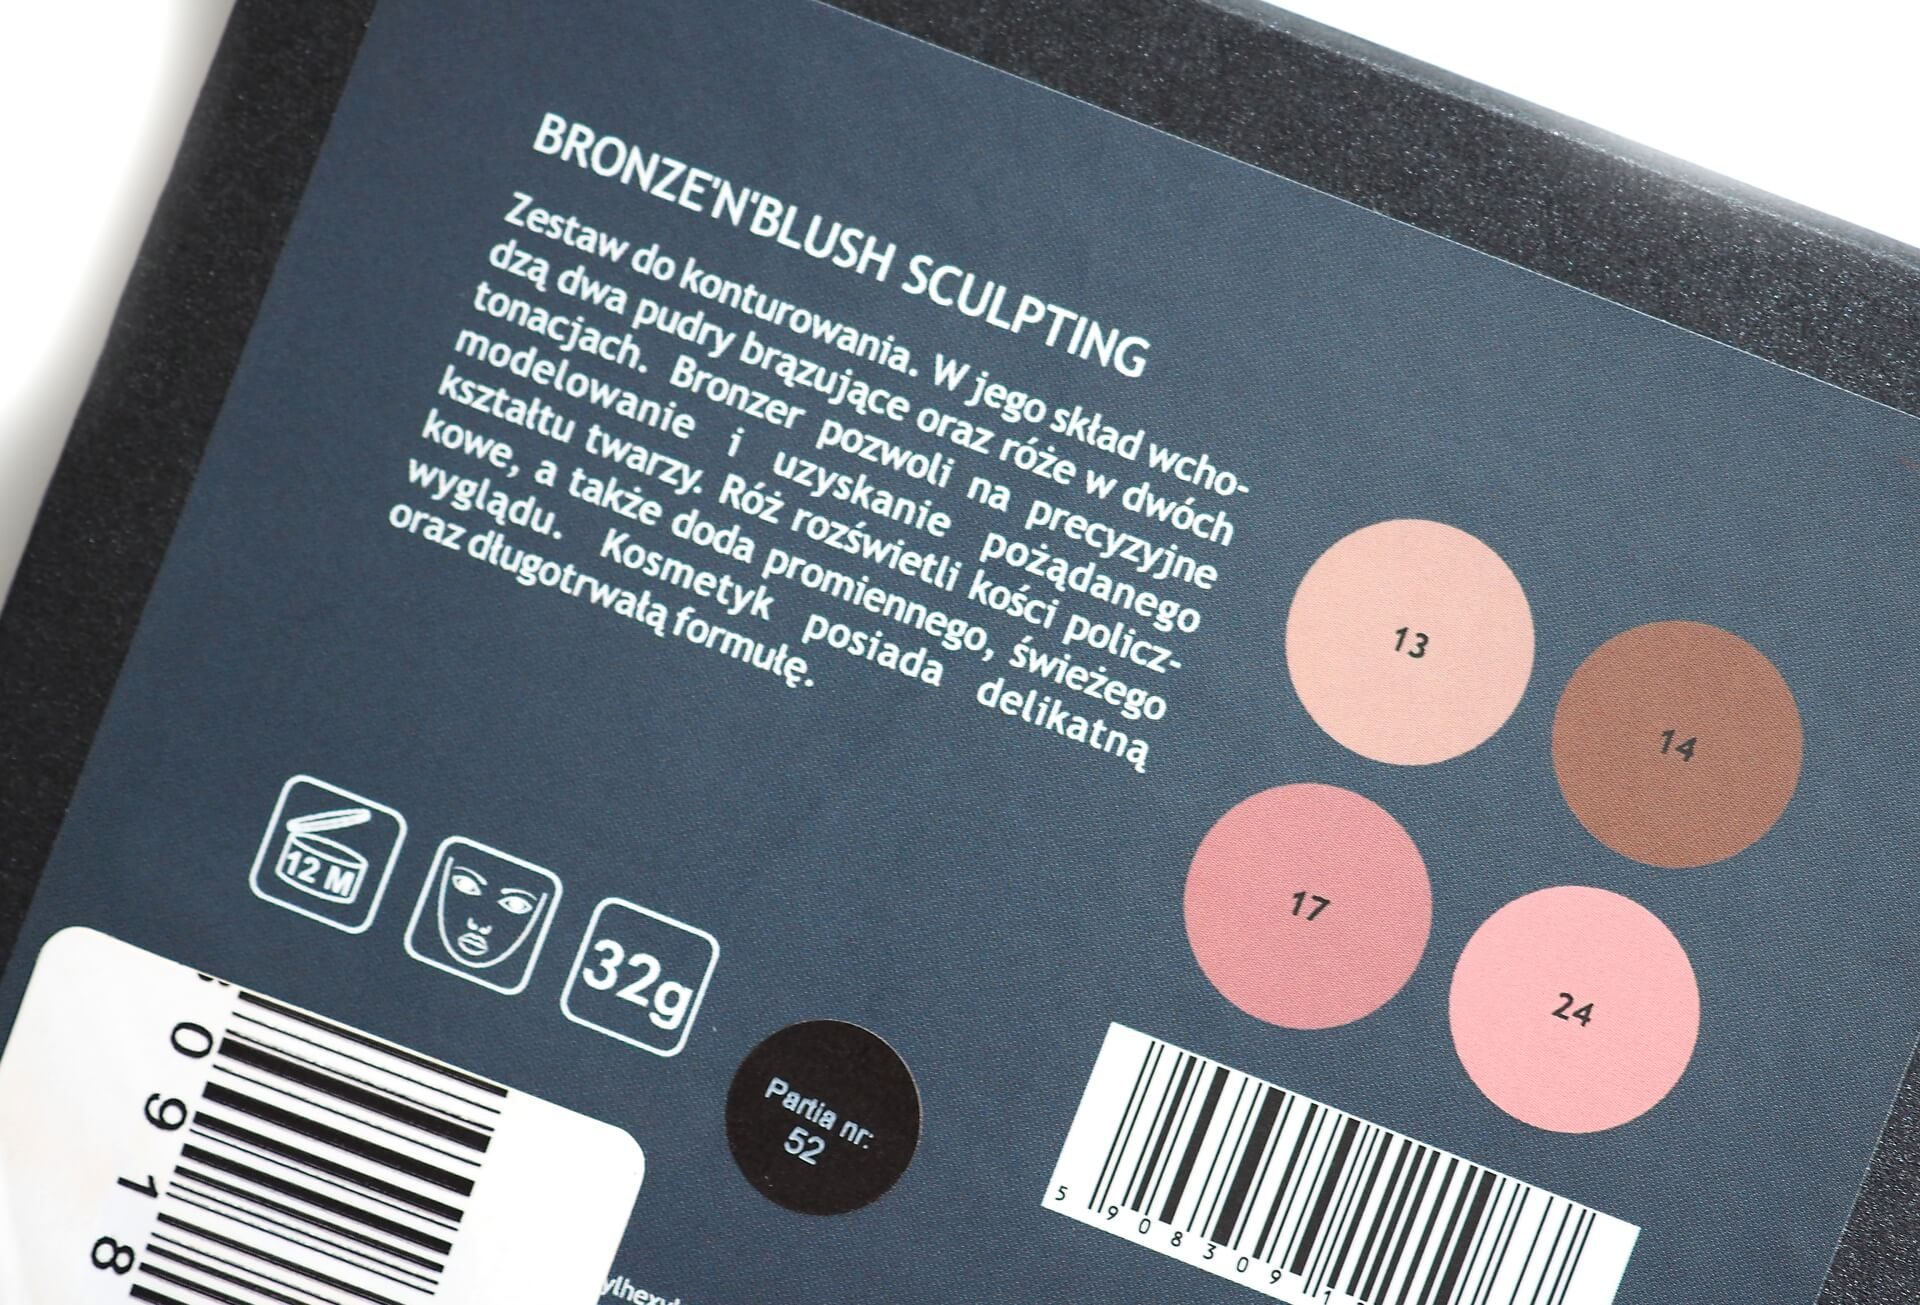 Kobo Bronze'n'Blush Sculpting